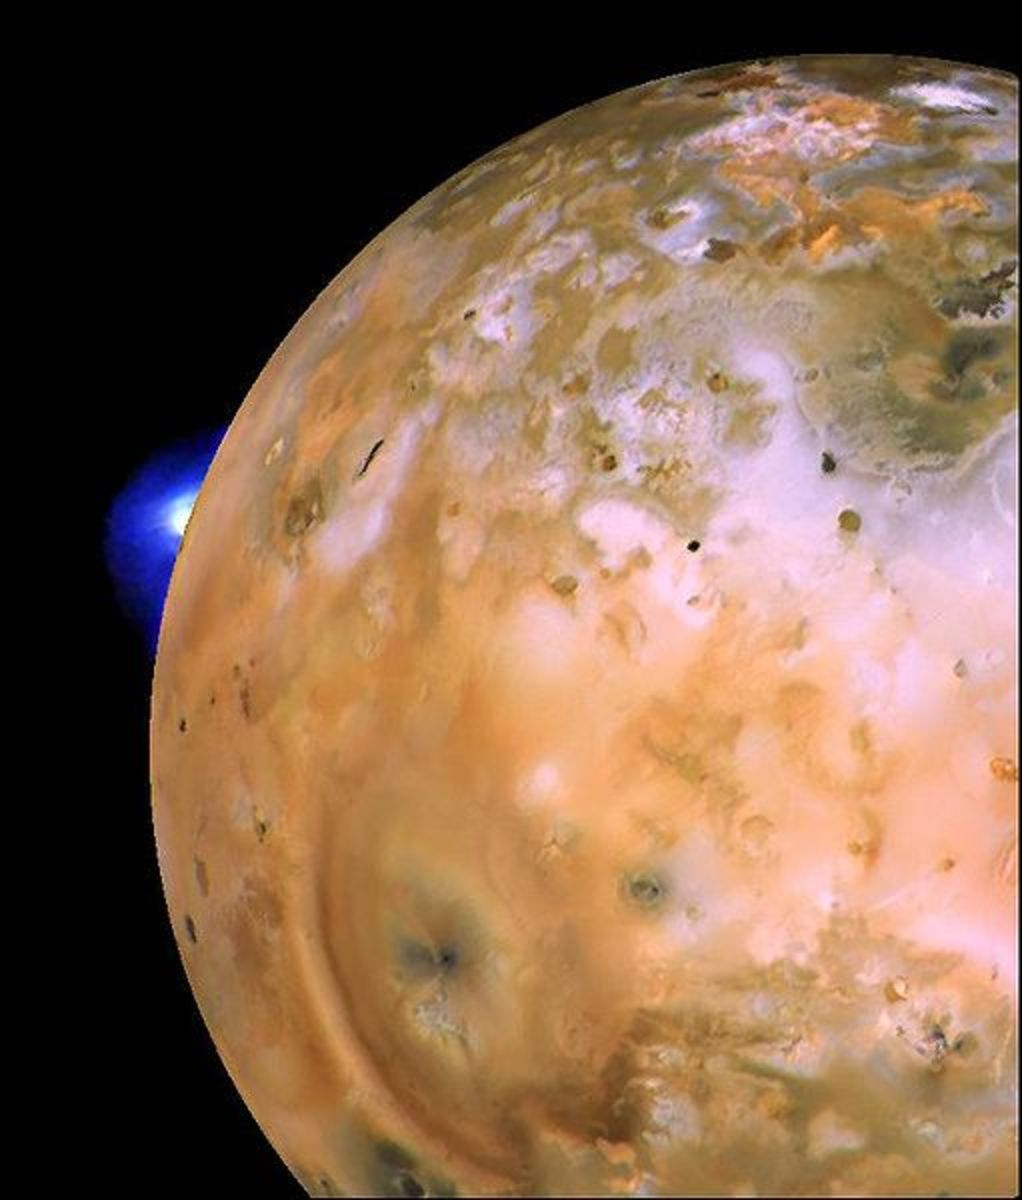 Voyager 1 image of Io (moon on Jupiter) showing active plume of Loki.